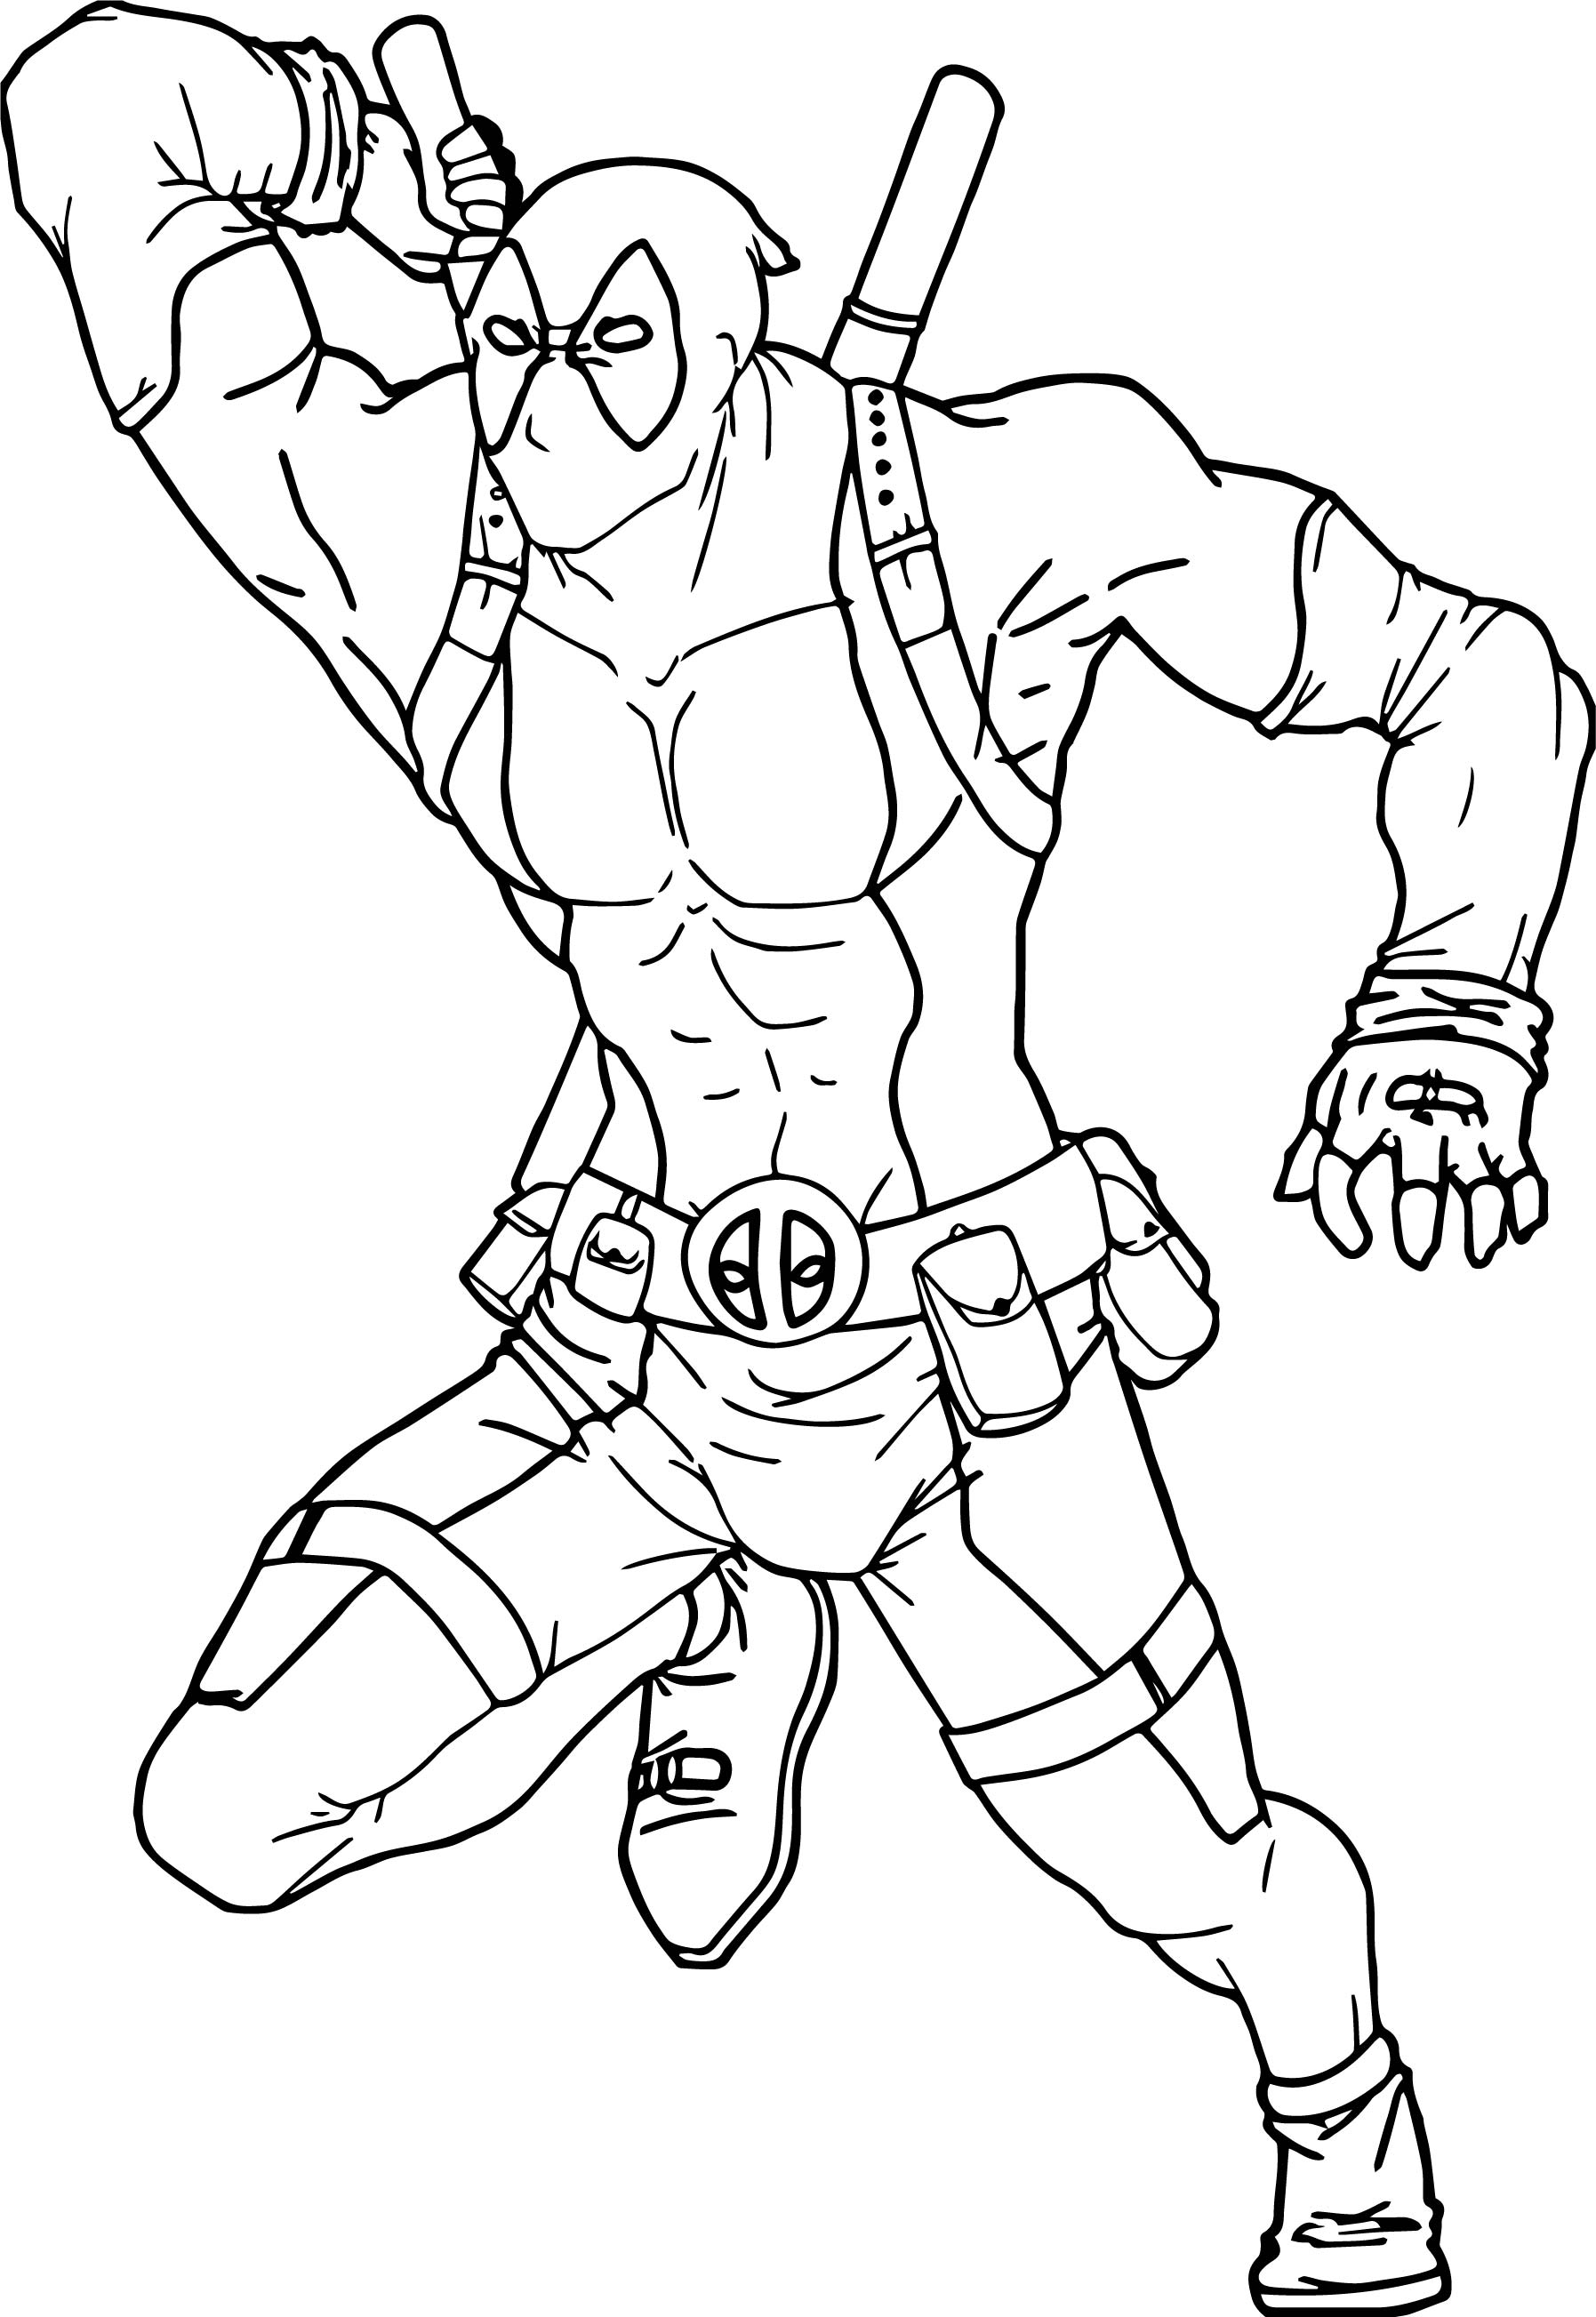 Deadpool attack coloring page for Deadpool printable coloring pages